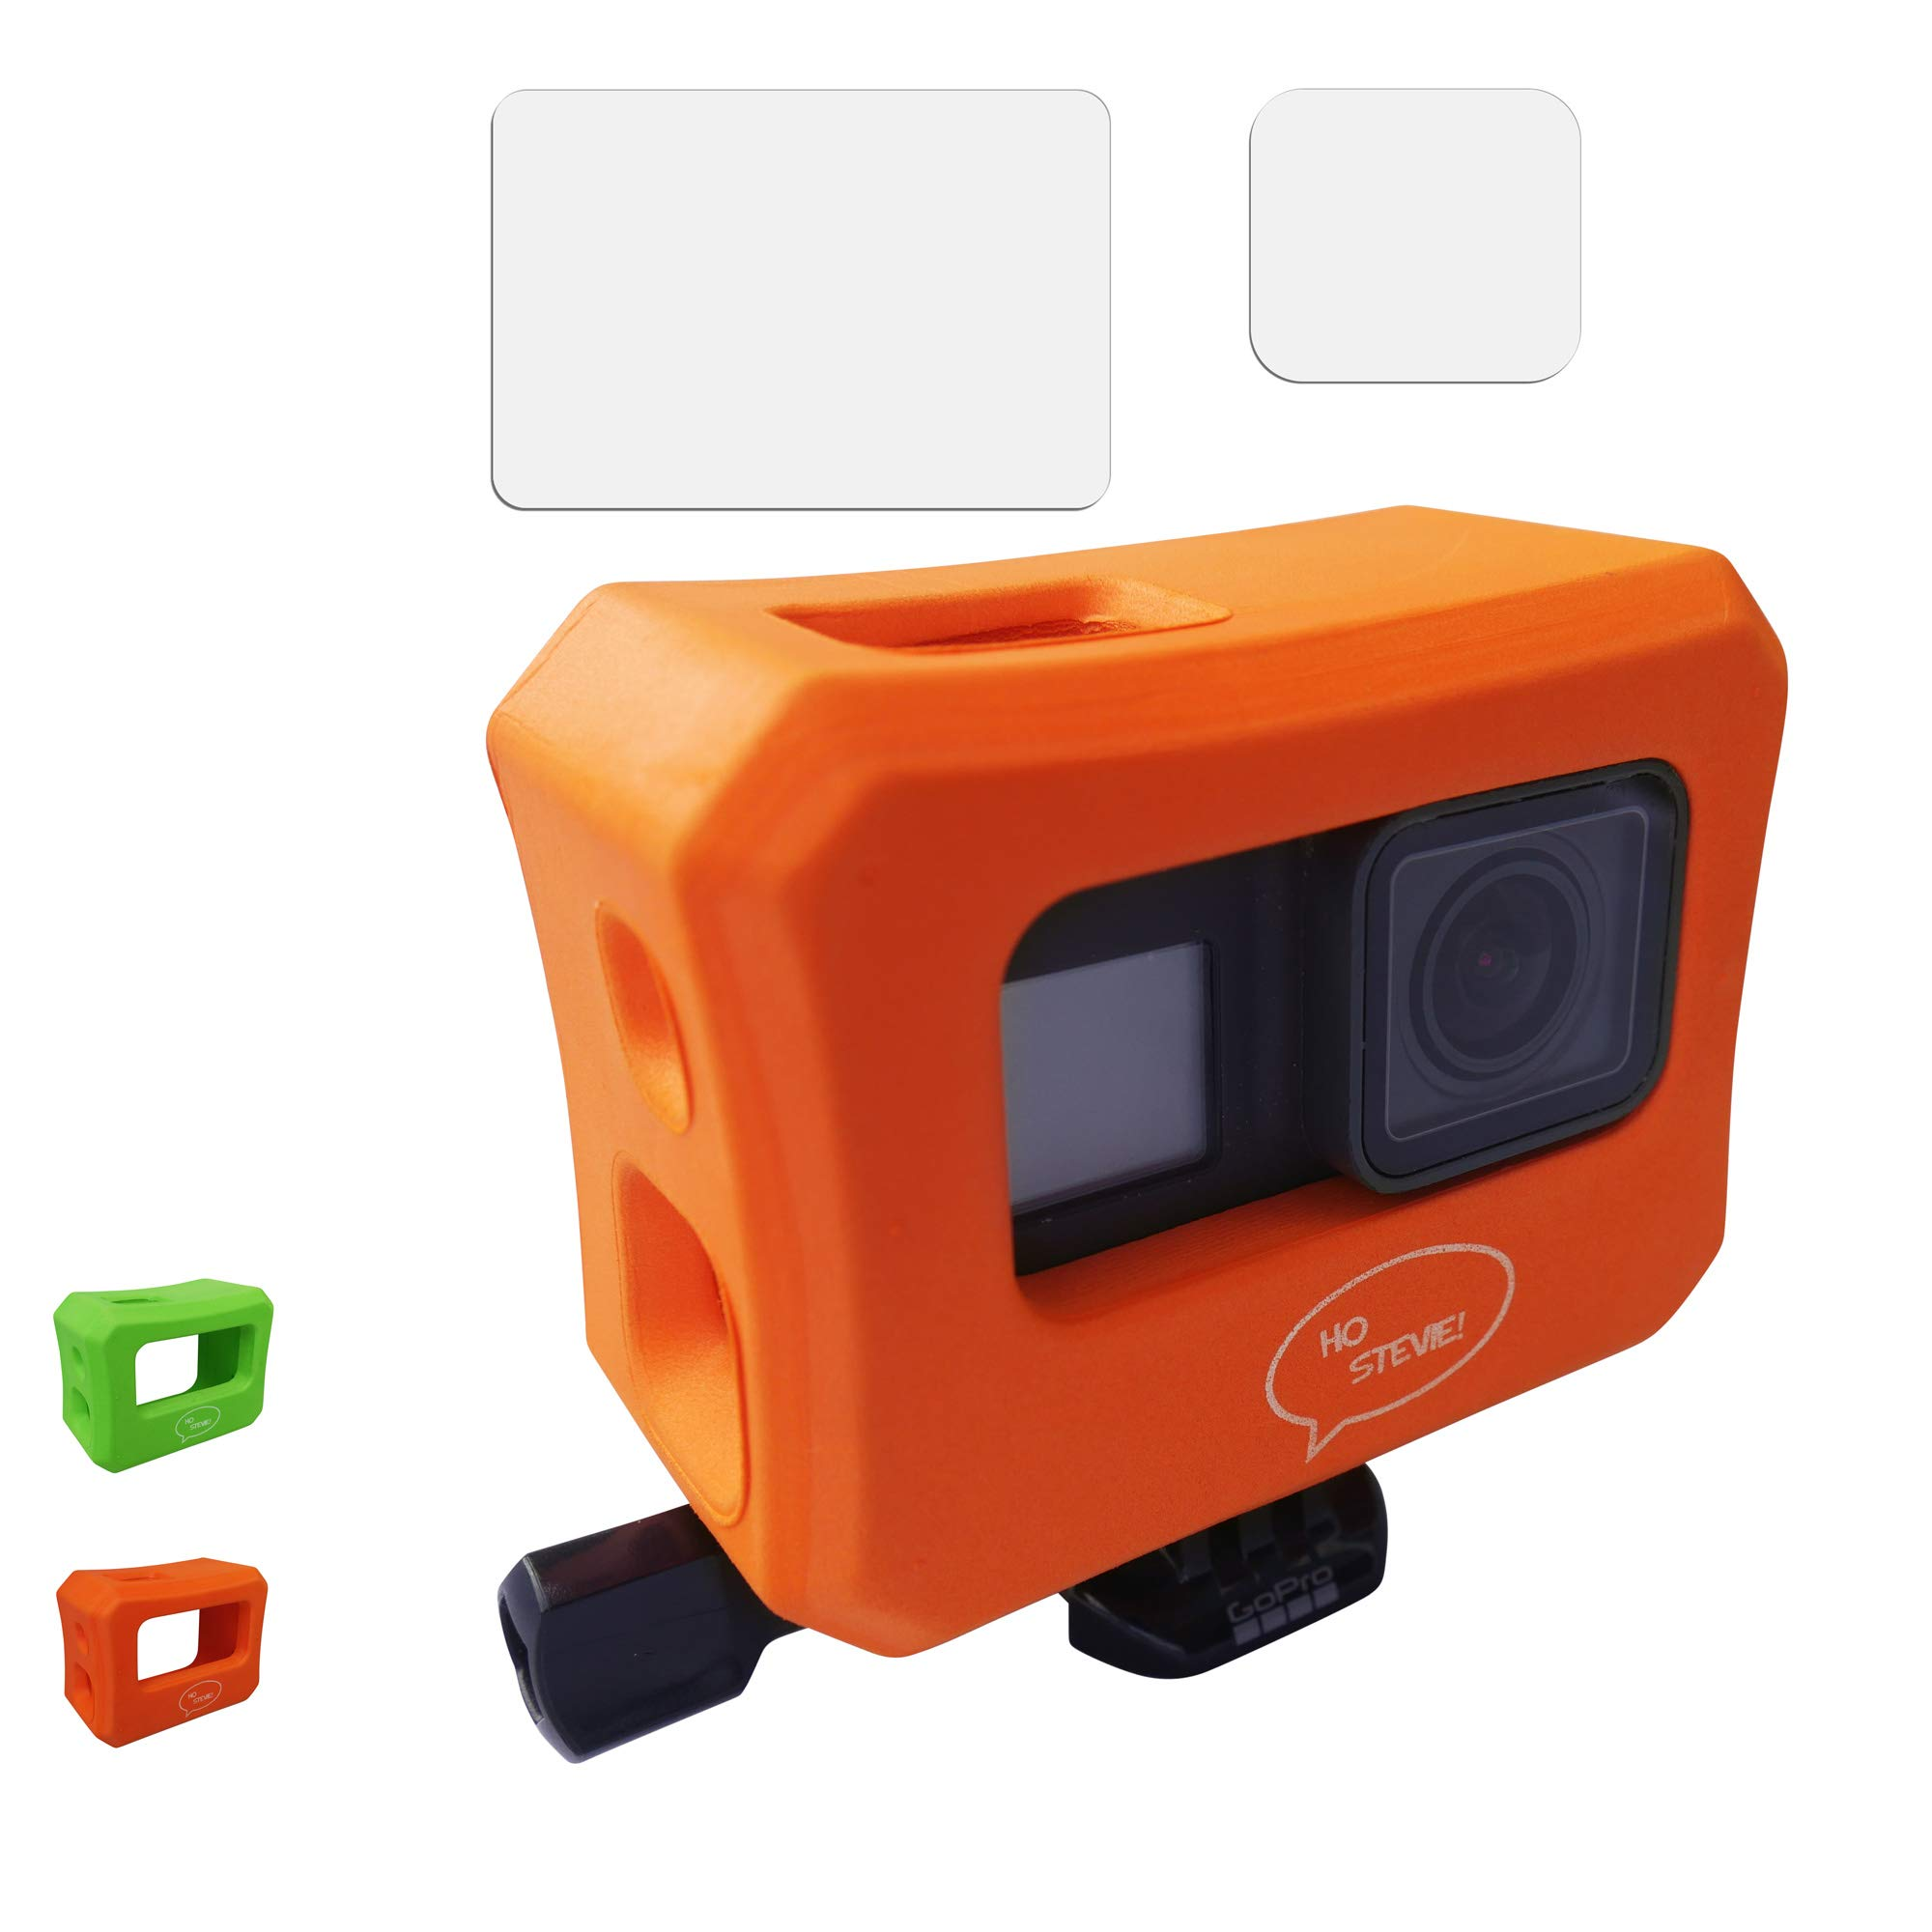 Ho Stevie! Floaty Case + Screen Protectors for GoPro Hero 7, Hero 6, or Hero 5 [Choose Color] (Orange)